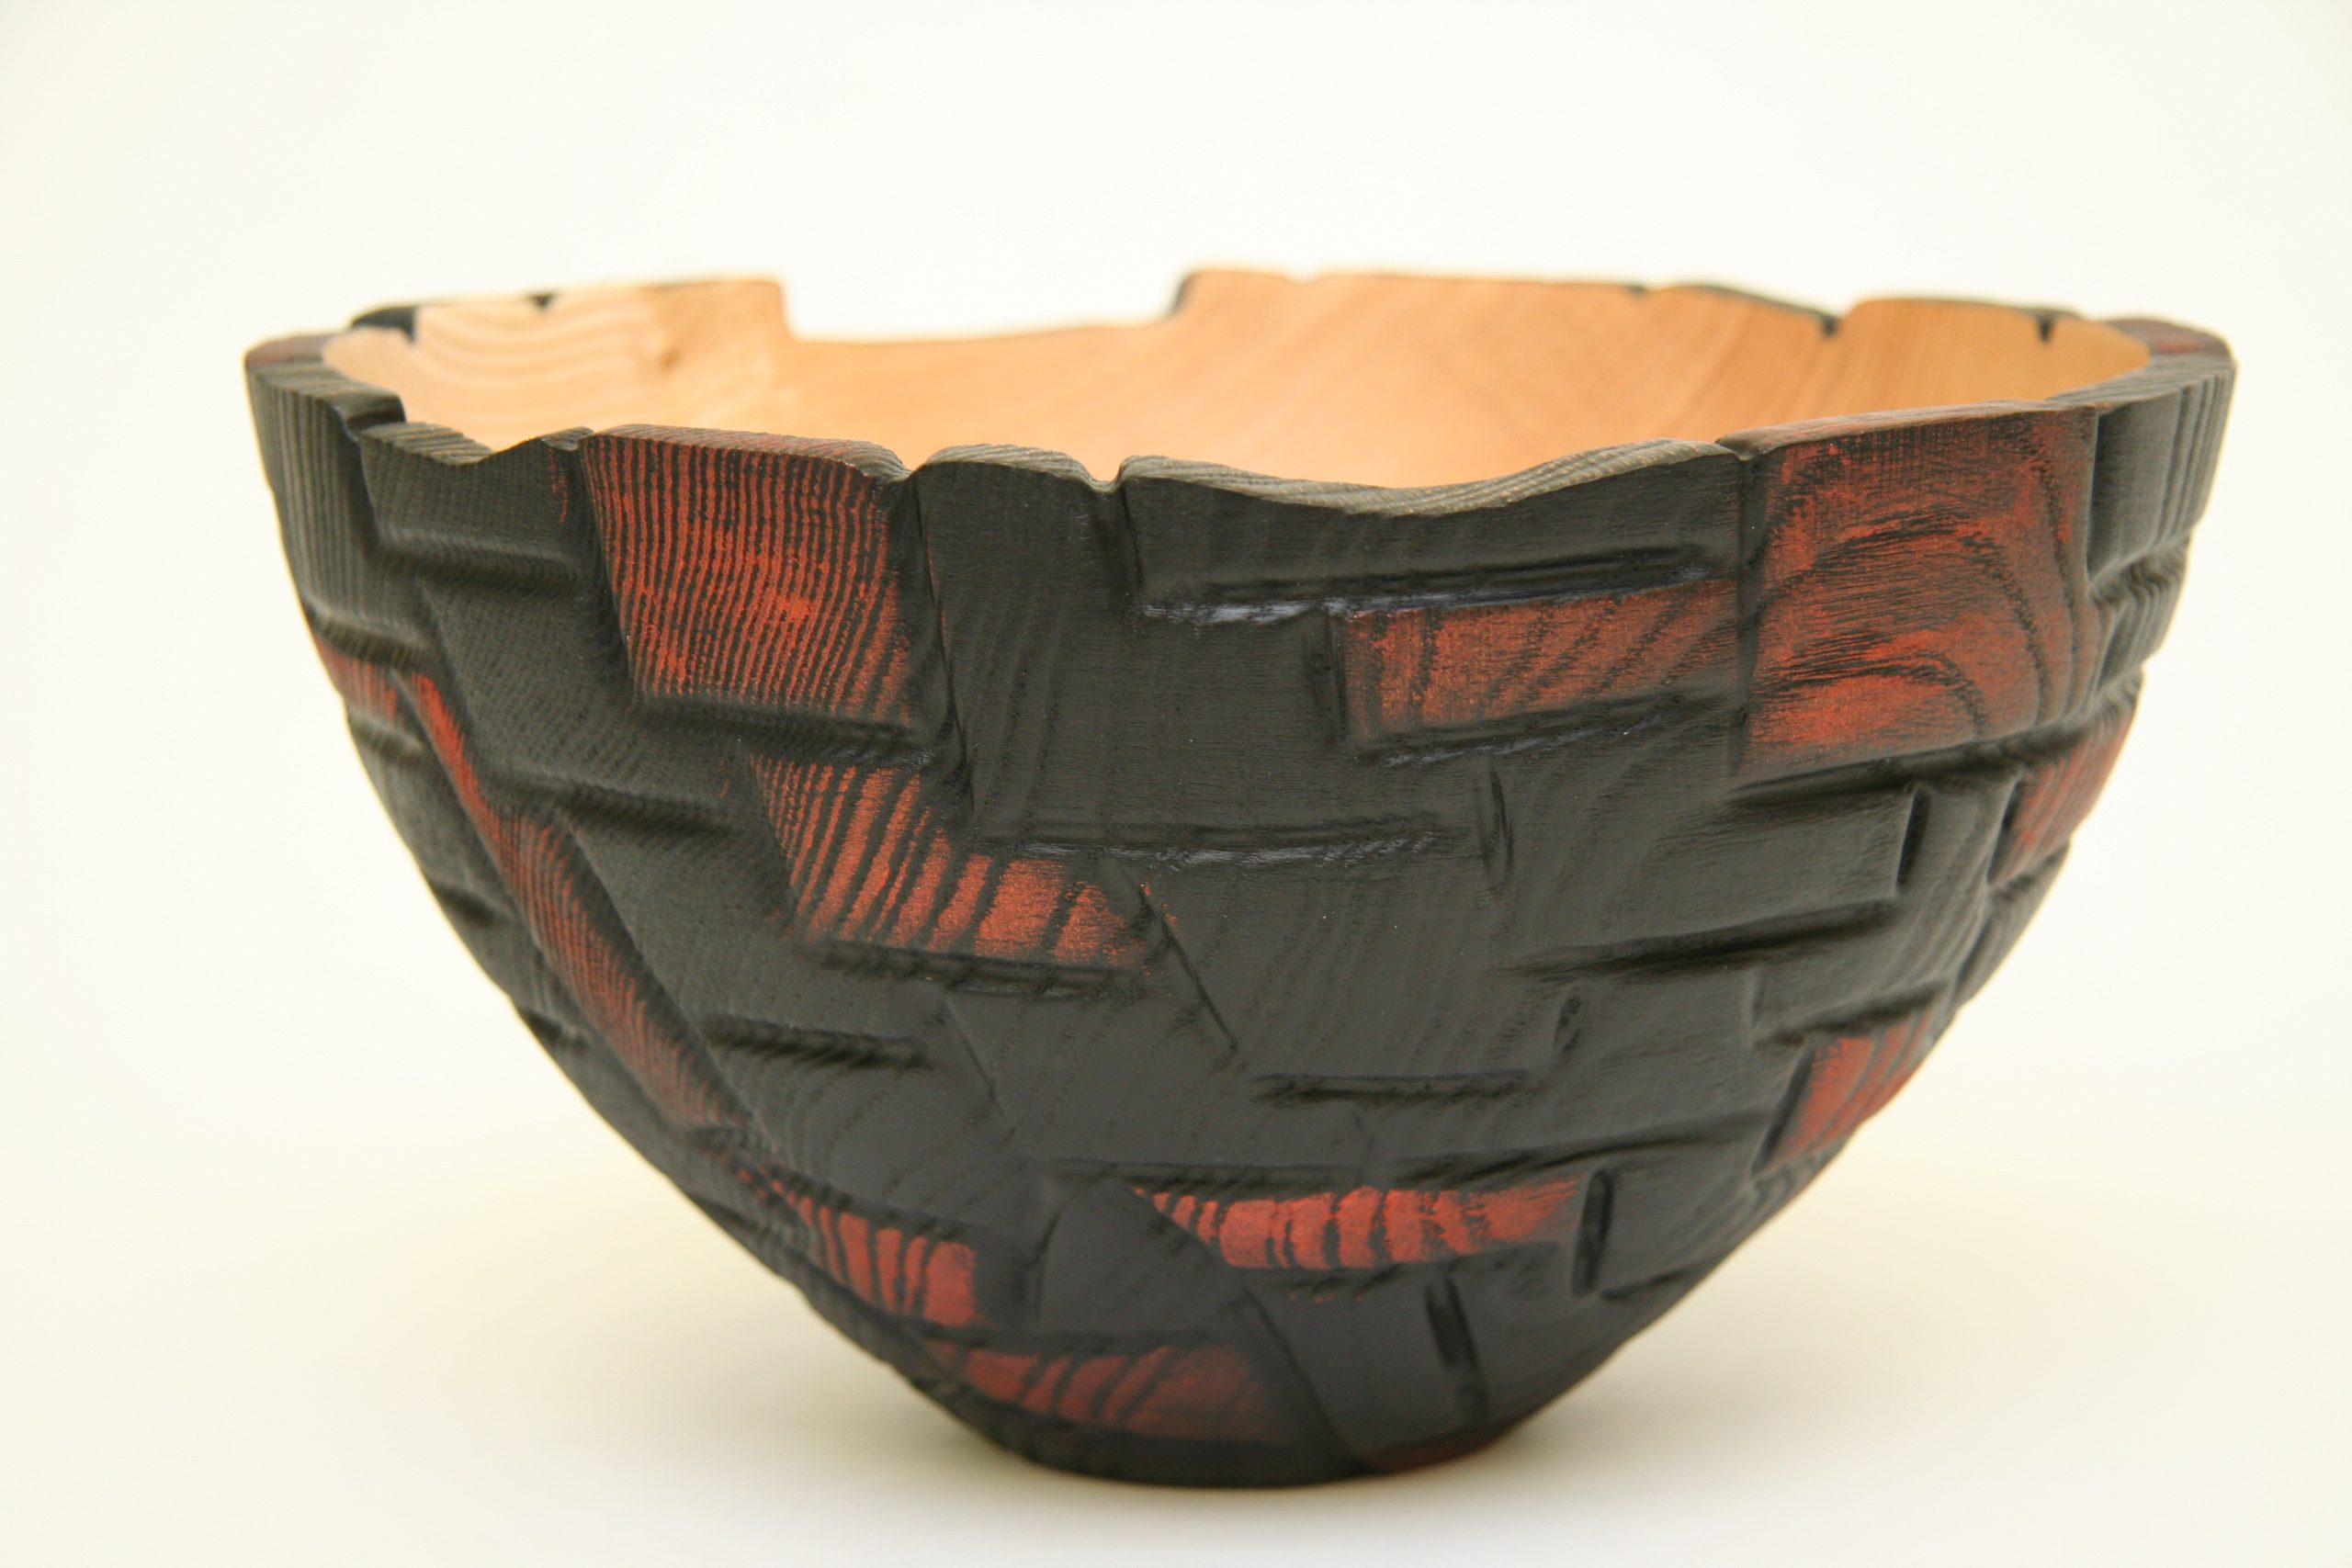 Ash bowl from Stone Wall Collection